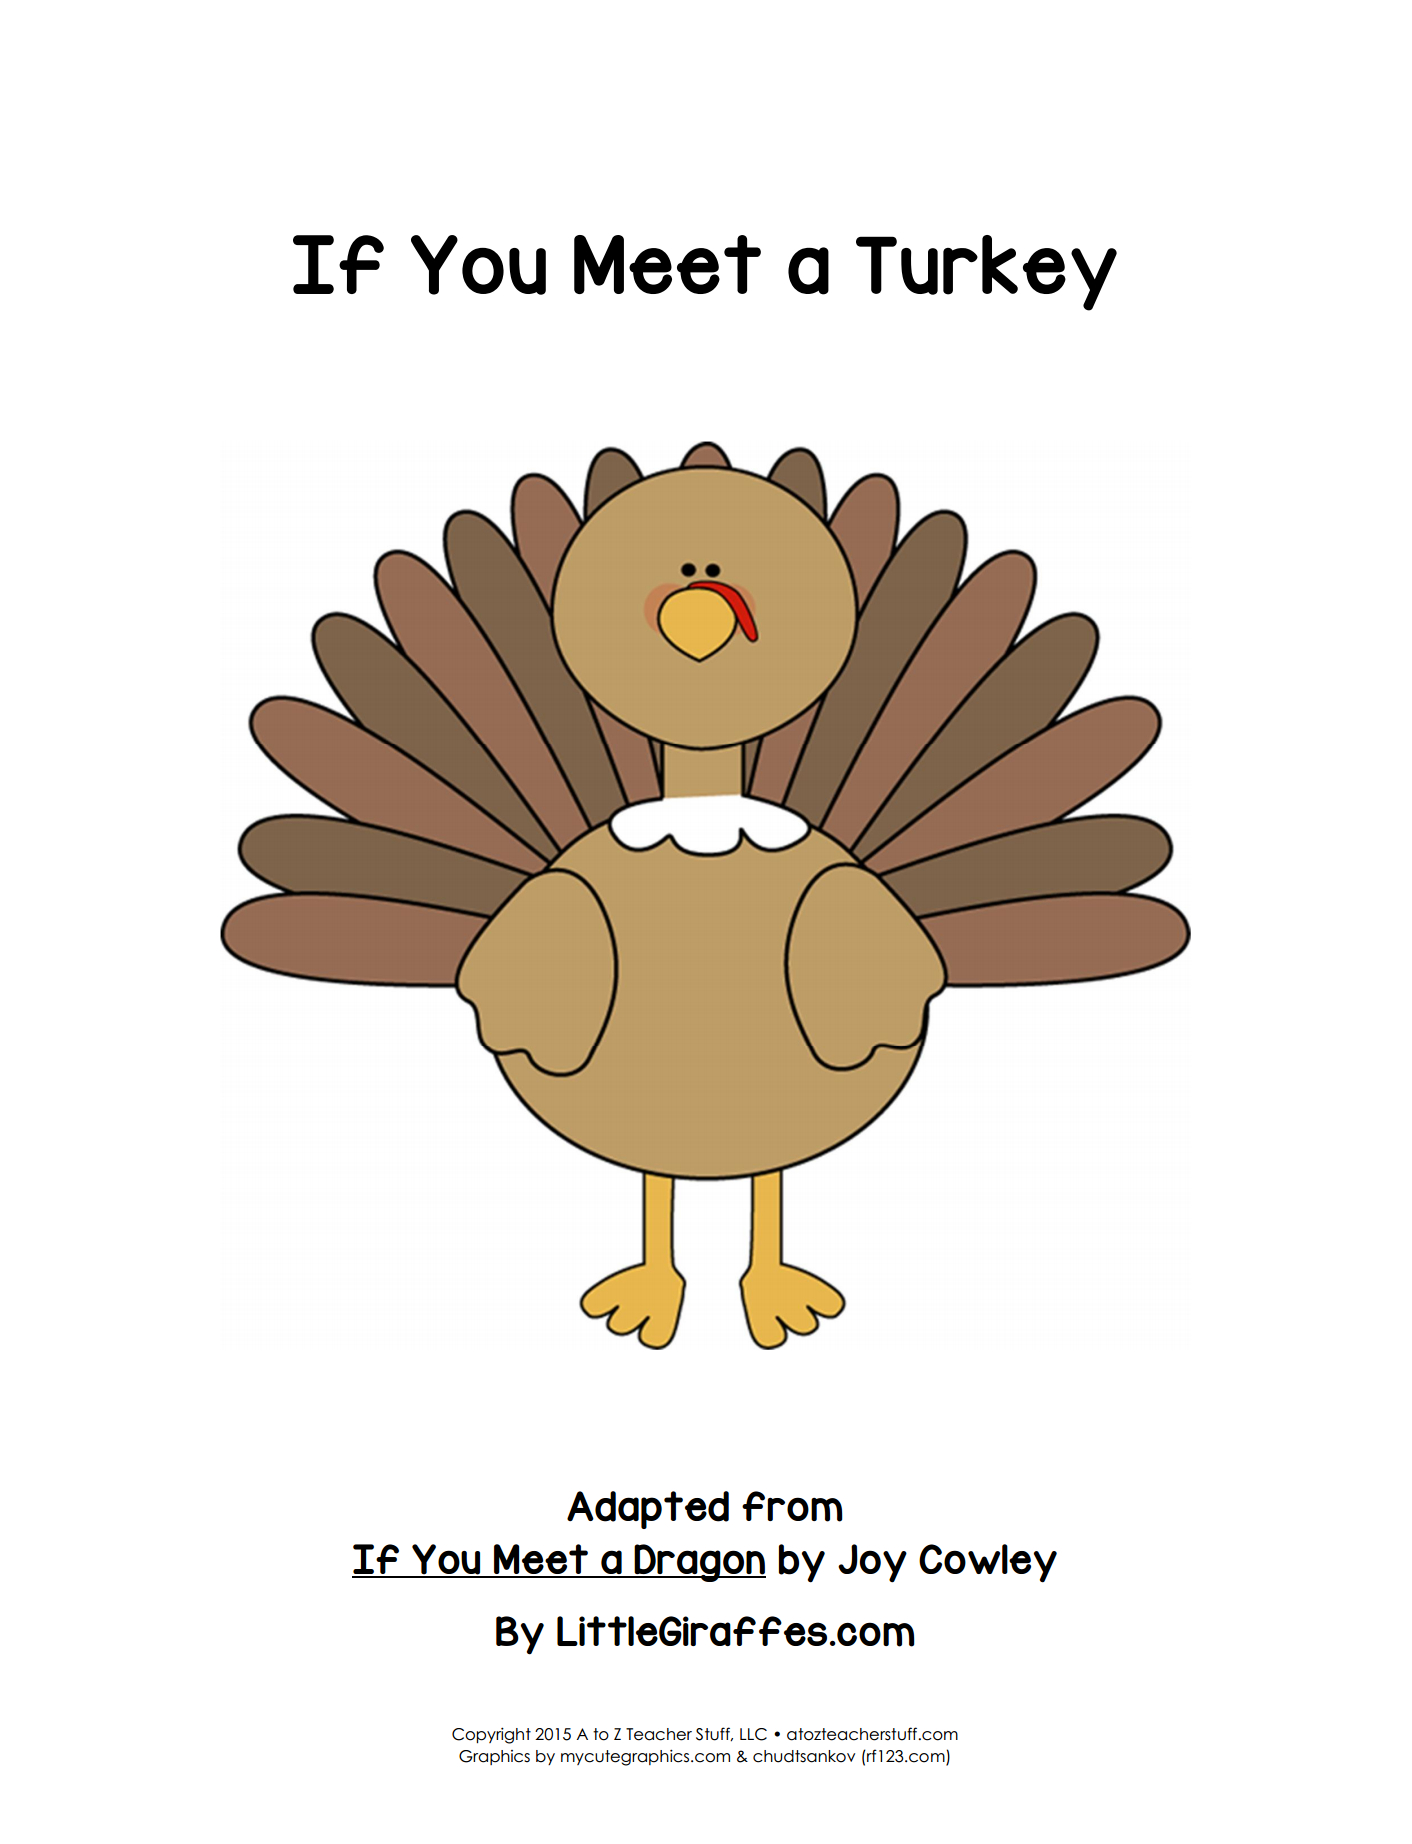 If You Meet A Turkey Printable Book | A To Z Teacher Stuff Printable - Free Printable Turkey